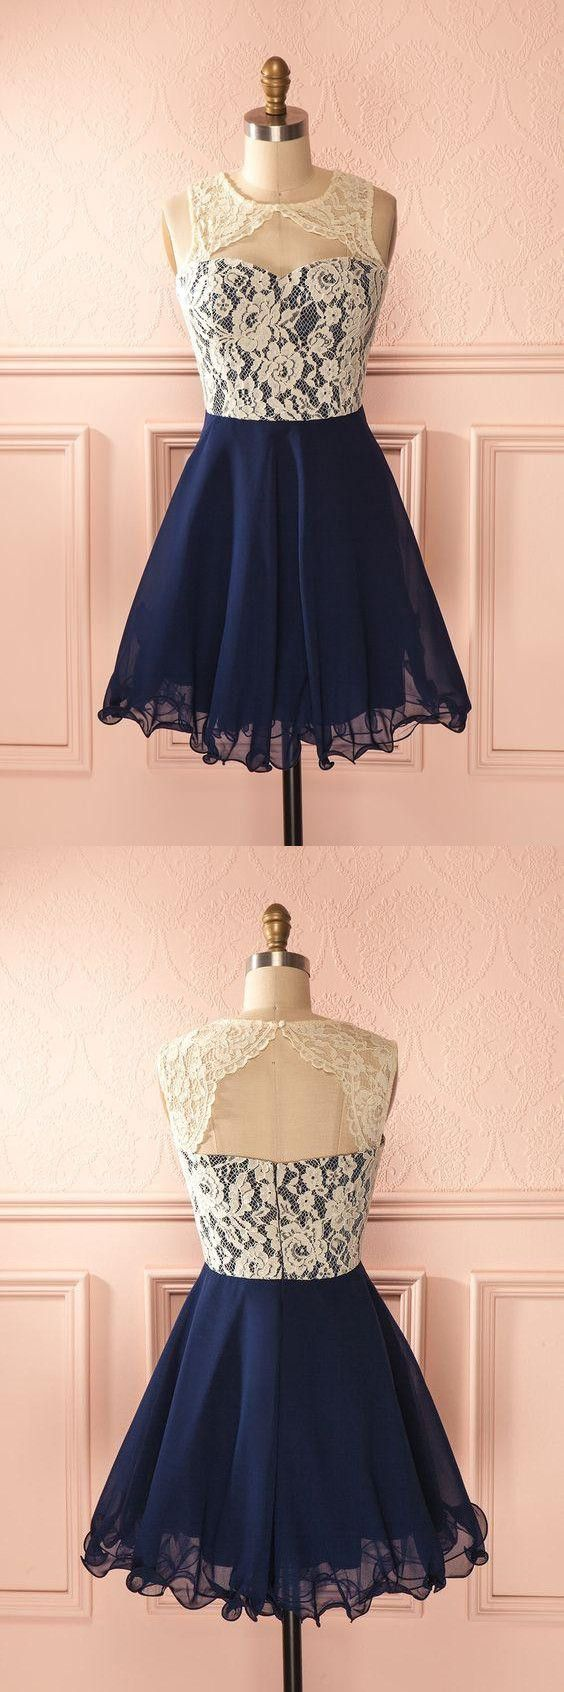 Cute Round Neck Lace Homecoming Dress,Navy Blue Lace Short Prom Dress,B0135